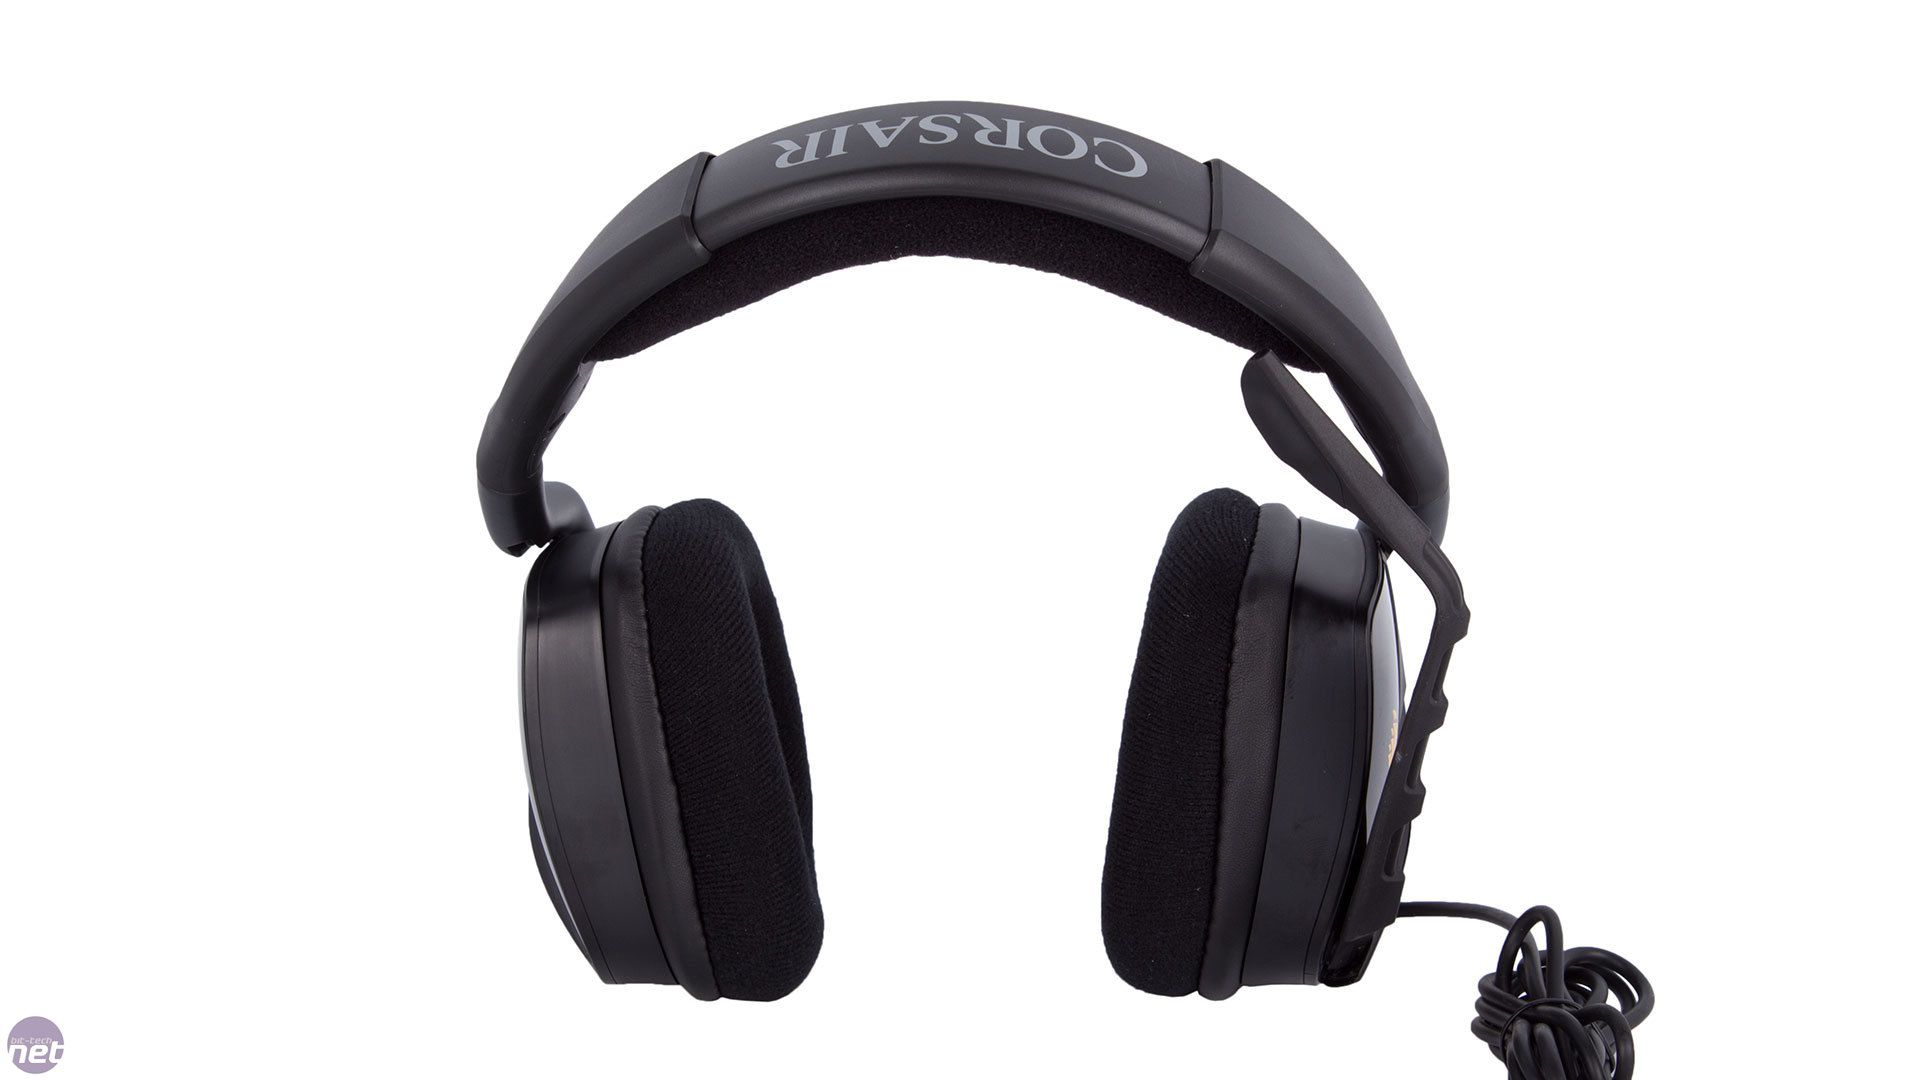 HEADSET GAMING CORSAIR VOID STEREO, CA-9011131-NA